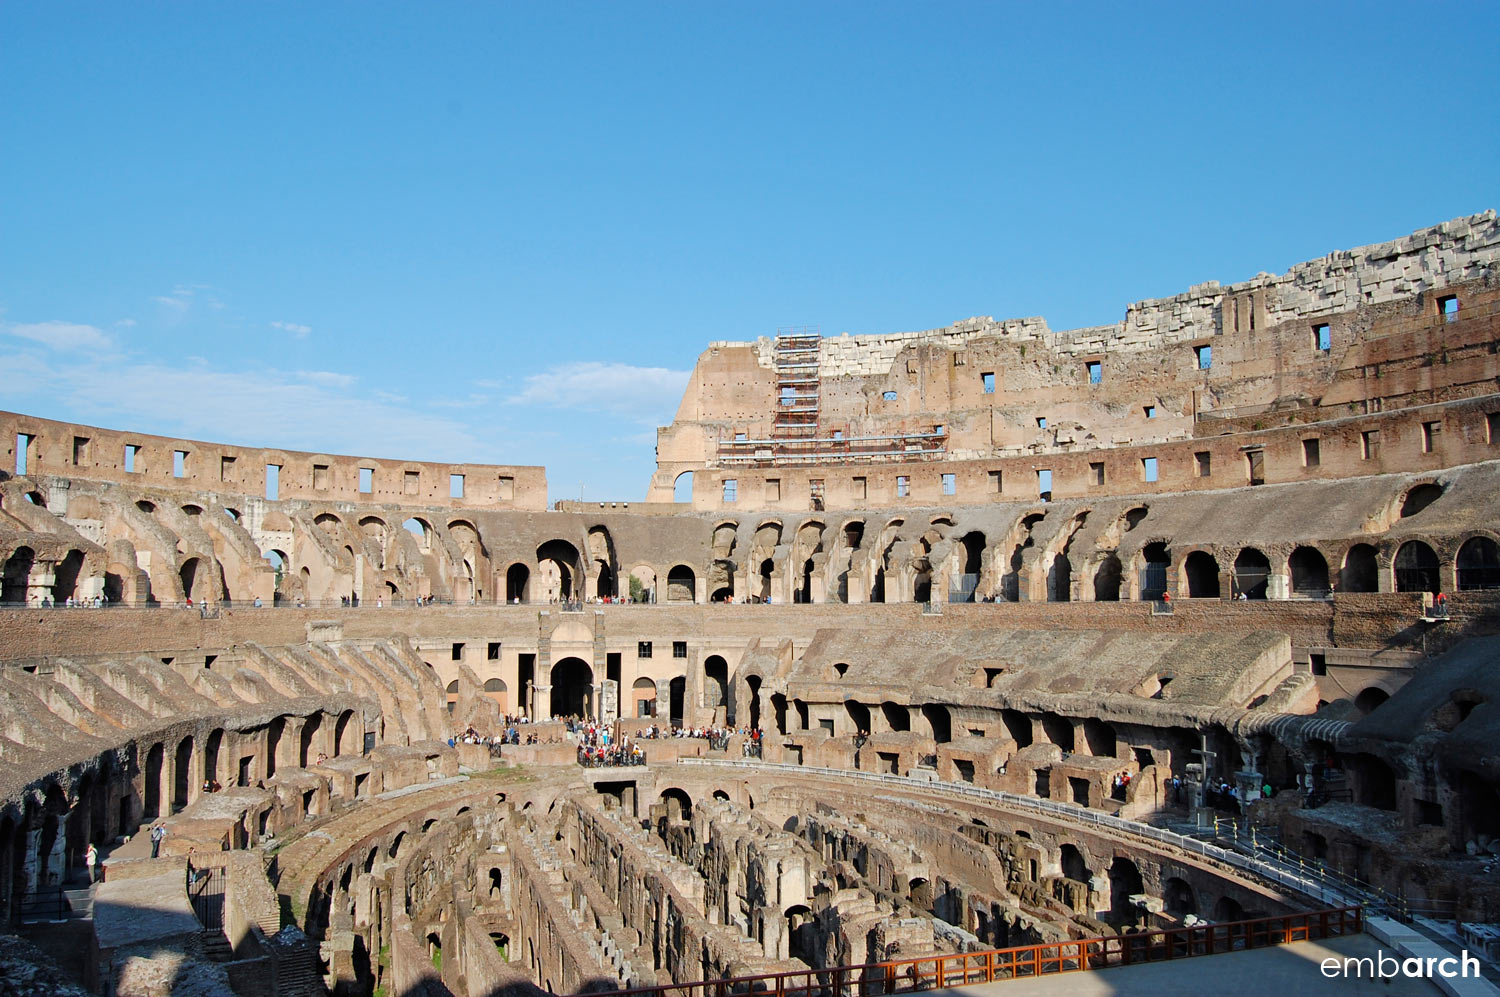 Colosseum - view of arena